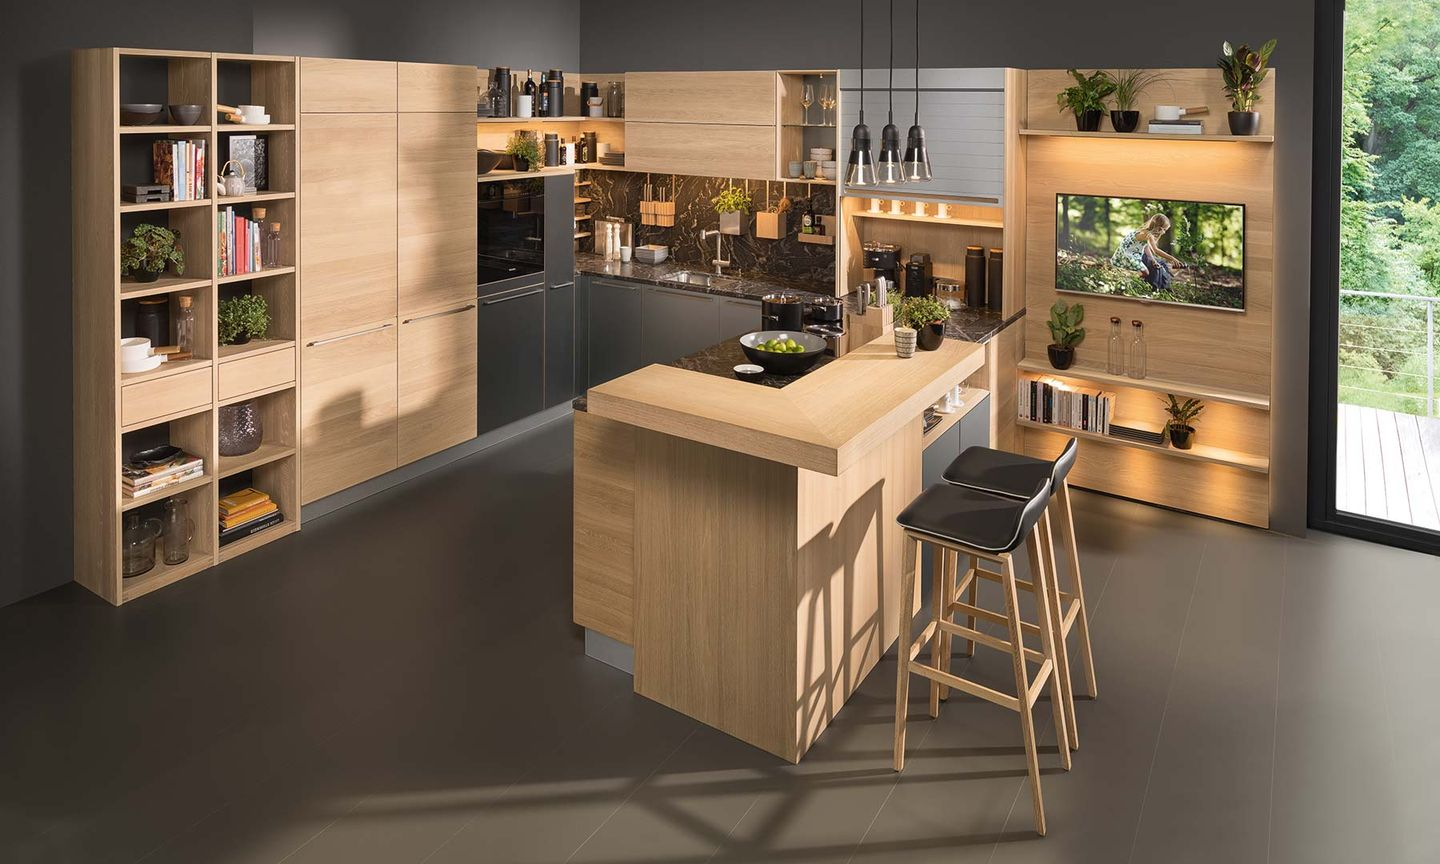 TEAM 7 wood kitchen linee